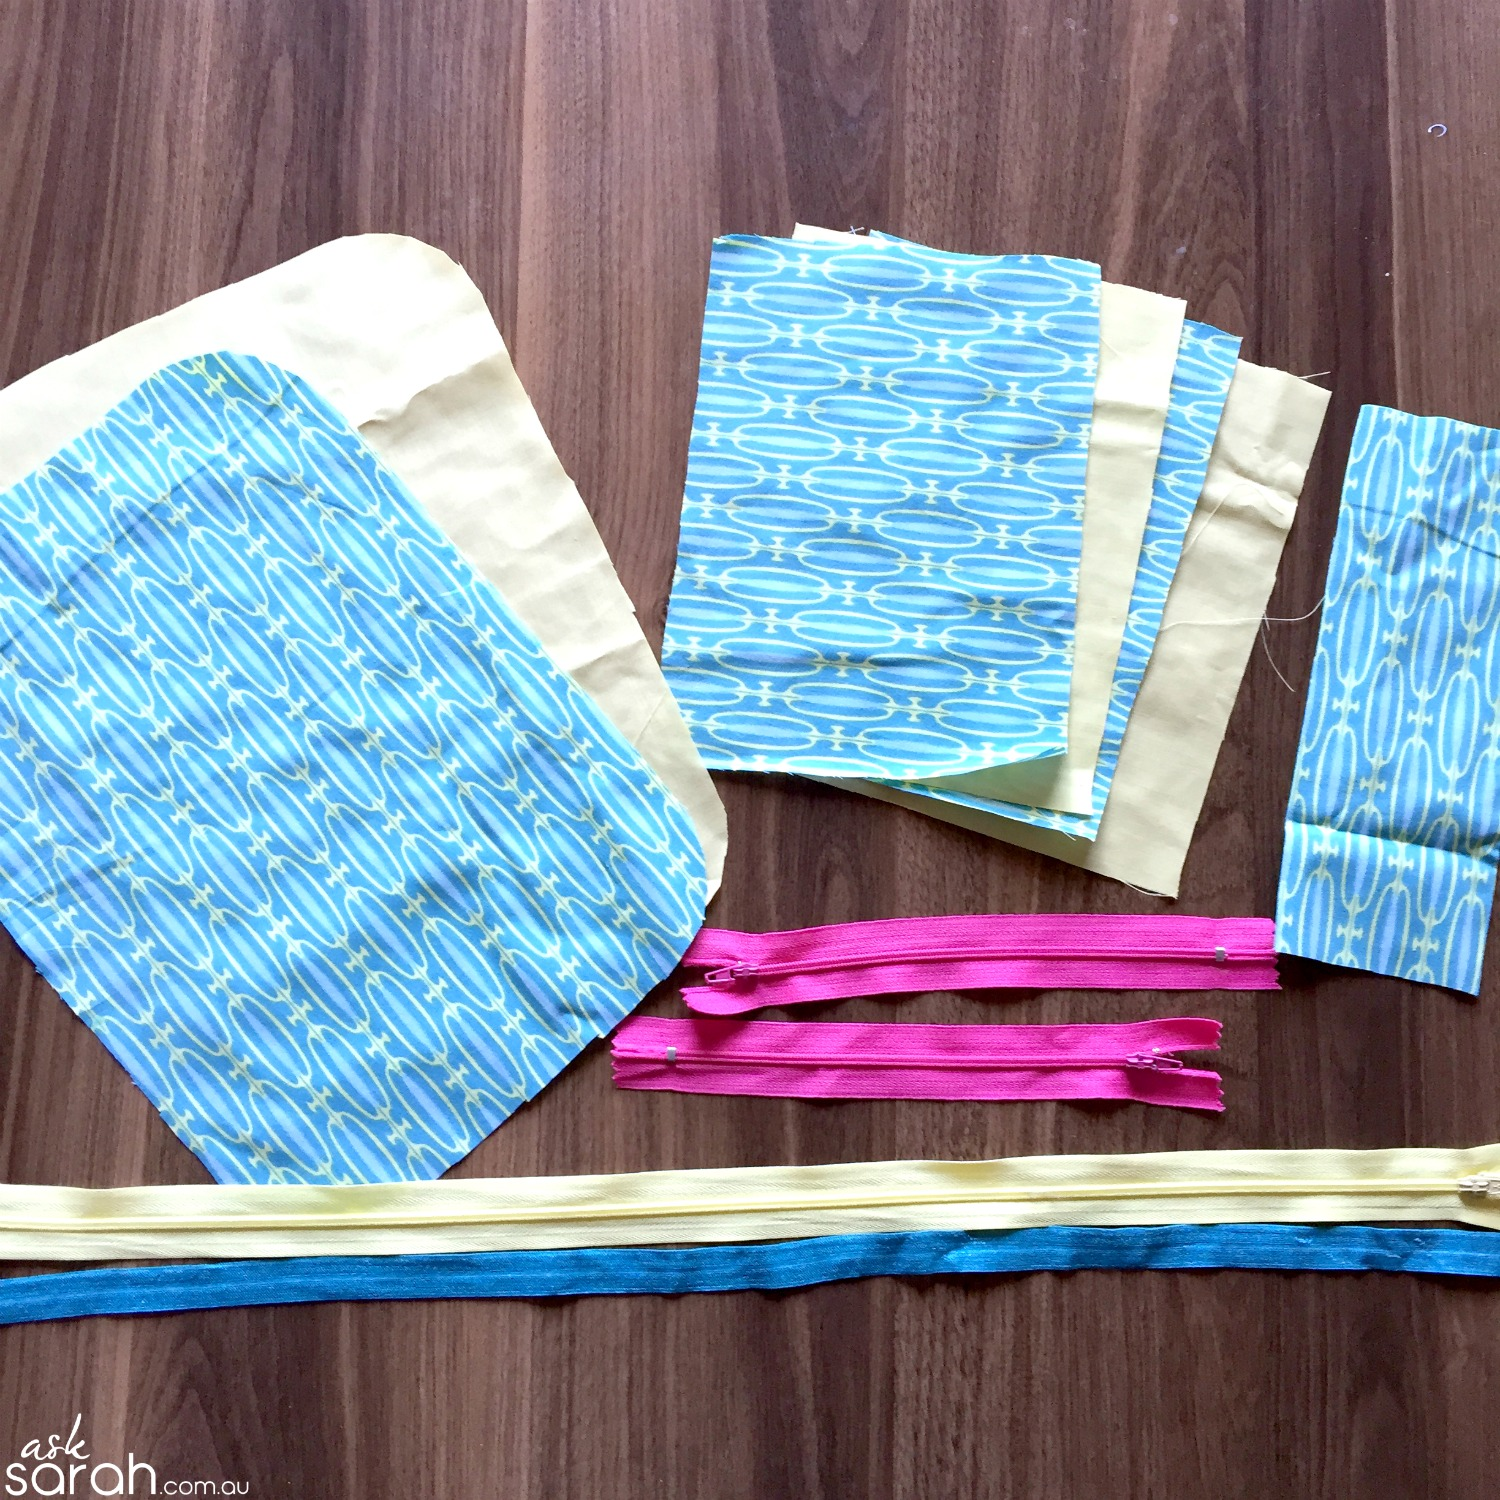 Sew: Mini Emergency Kit {Flat Opening Zipper Pouch Tutorial}